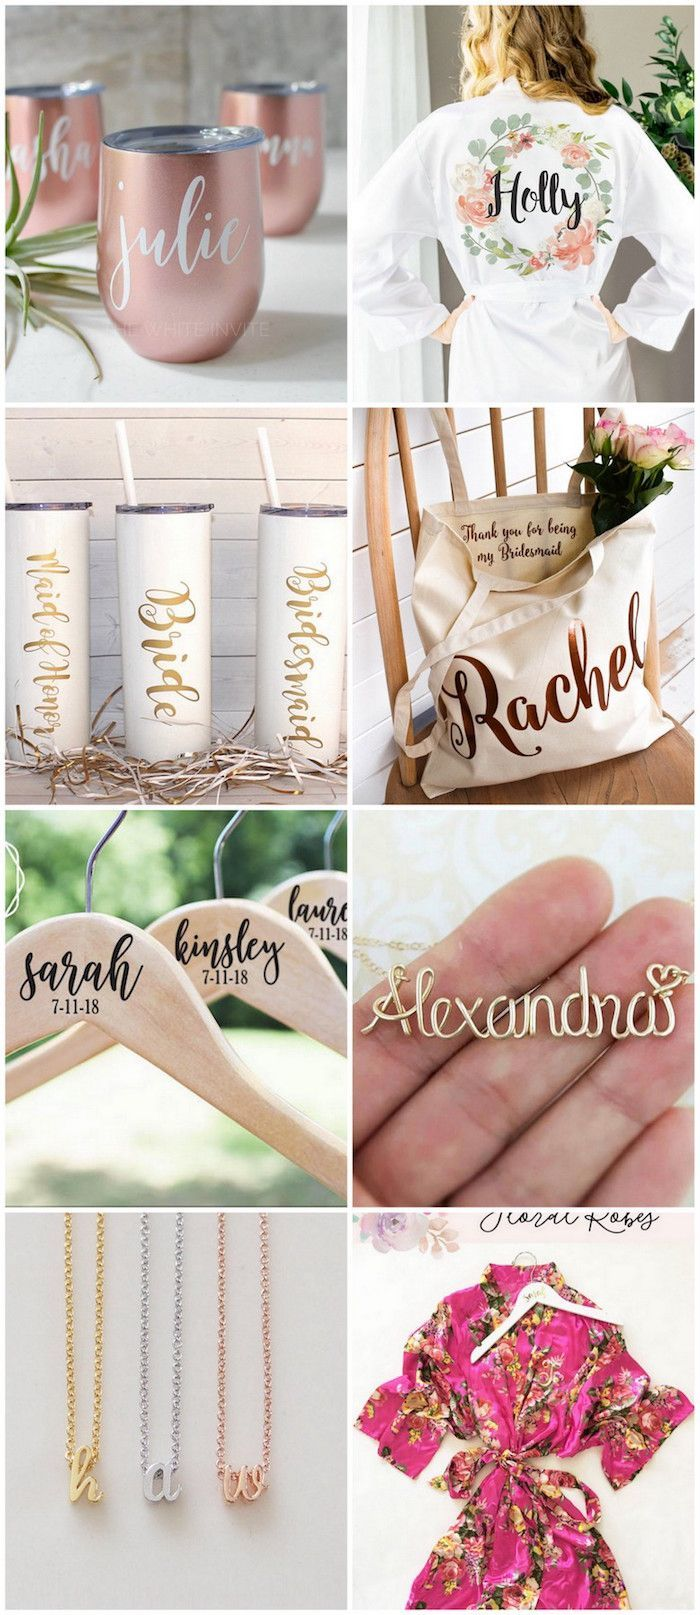 20+ Cute and thoughtful Bridesmaid Gift ideas for your squad. See more here: http://www.confettidaydreams.com/bridesmaids-gifts-ideas/